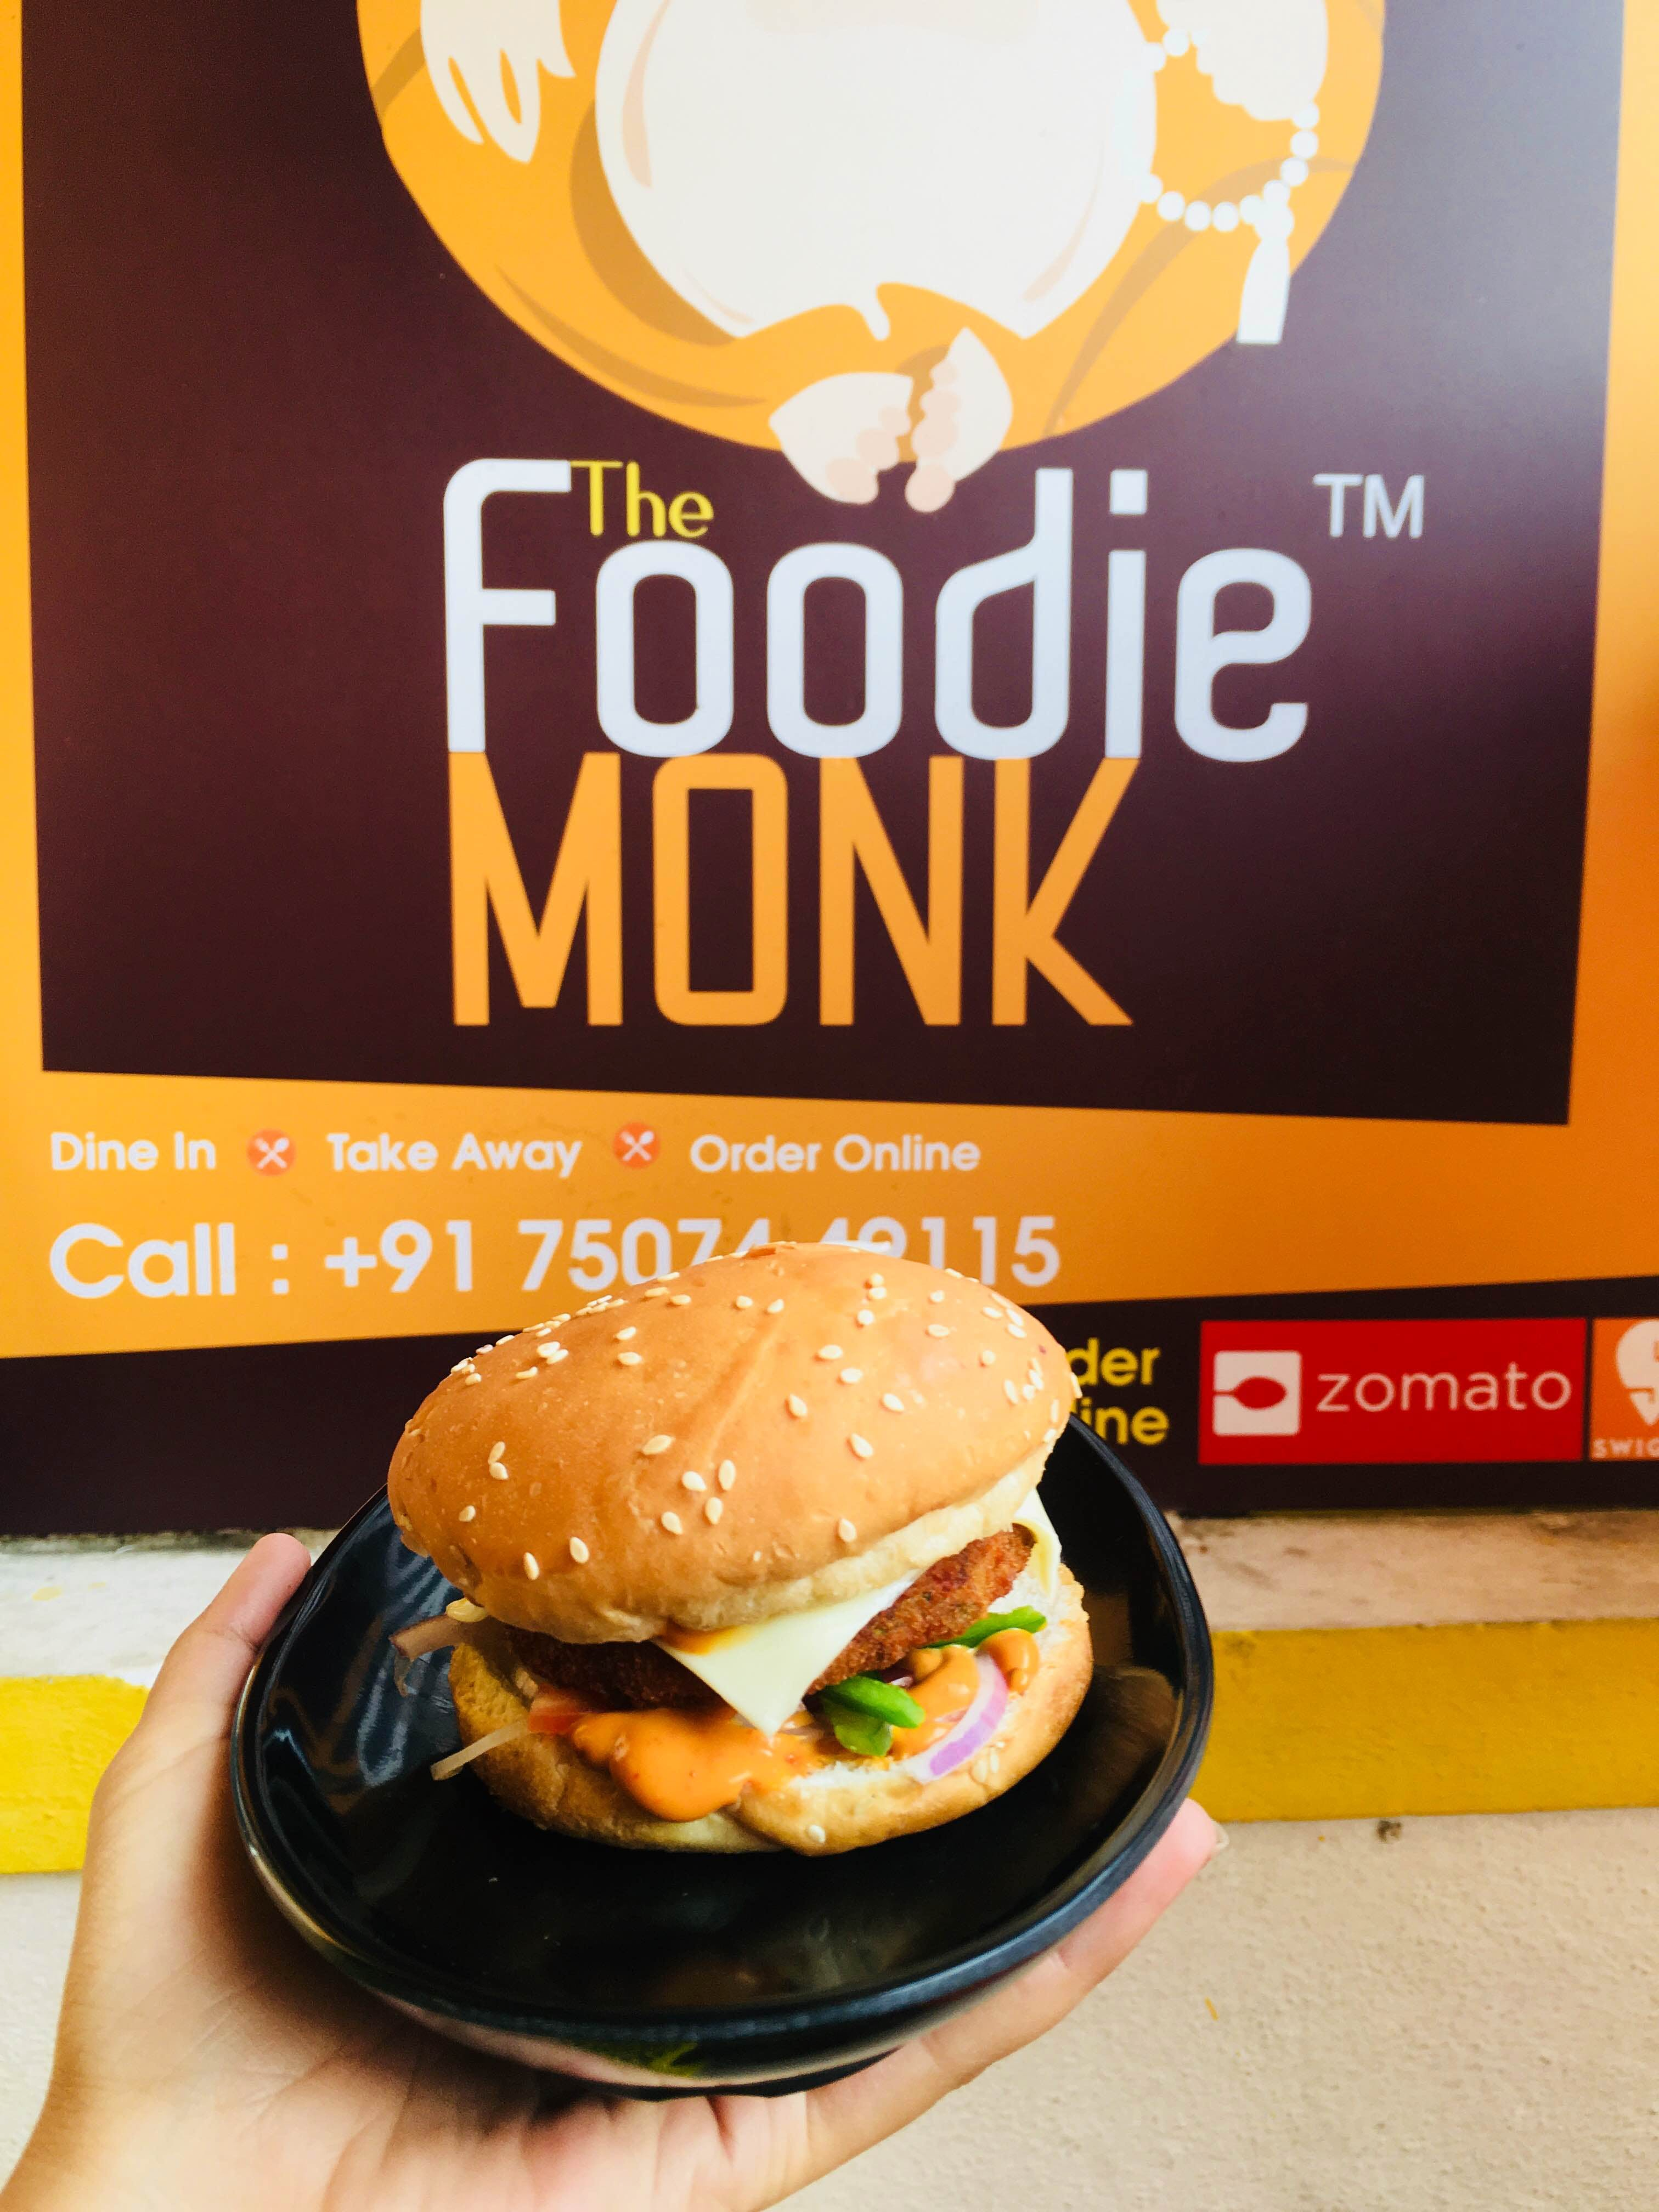 image - The Foodie Monk